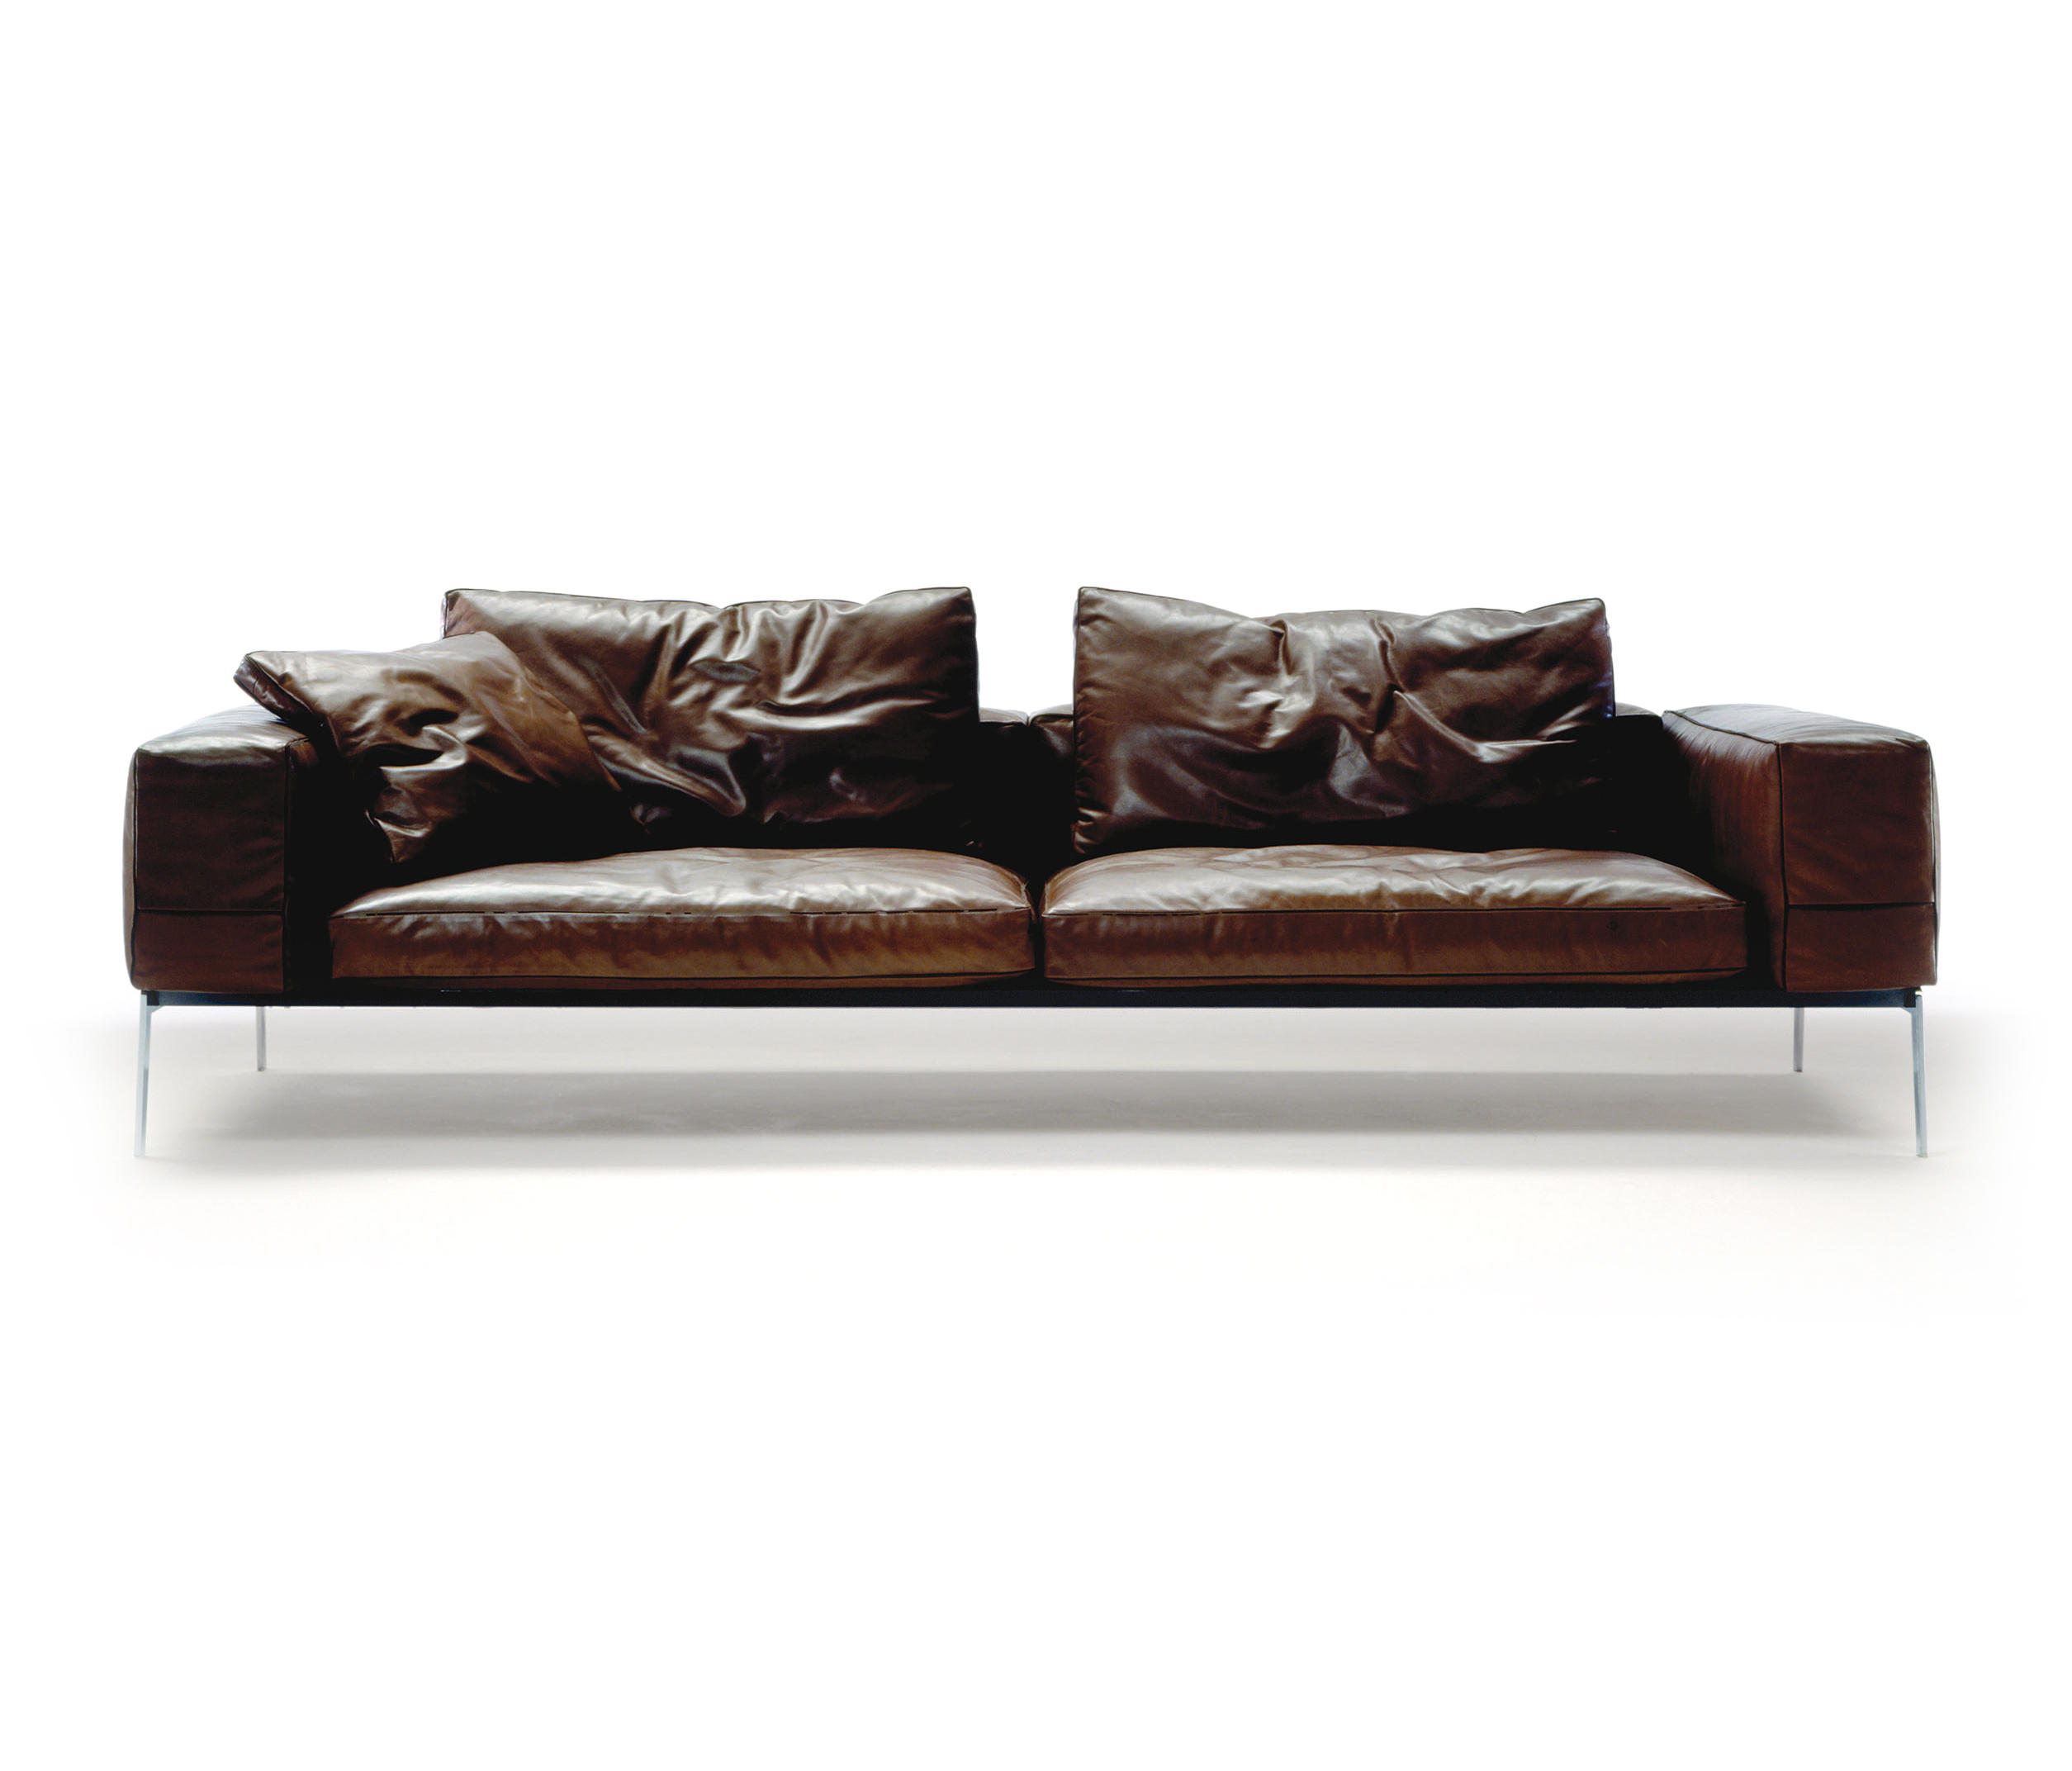 Superb Lifesteel Sofas From Flexform Architonic Pdpeps Interior Chair Design Pdpepsorg